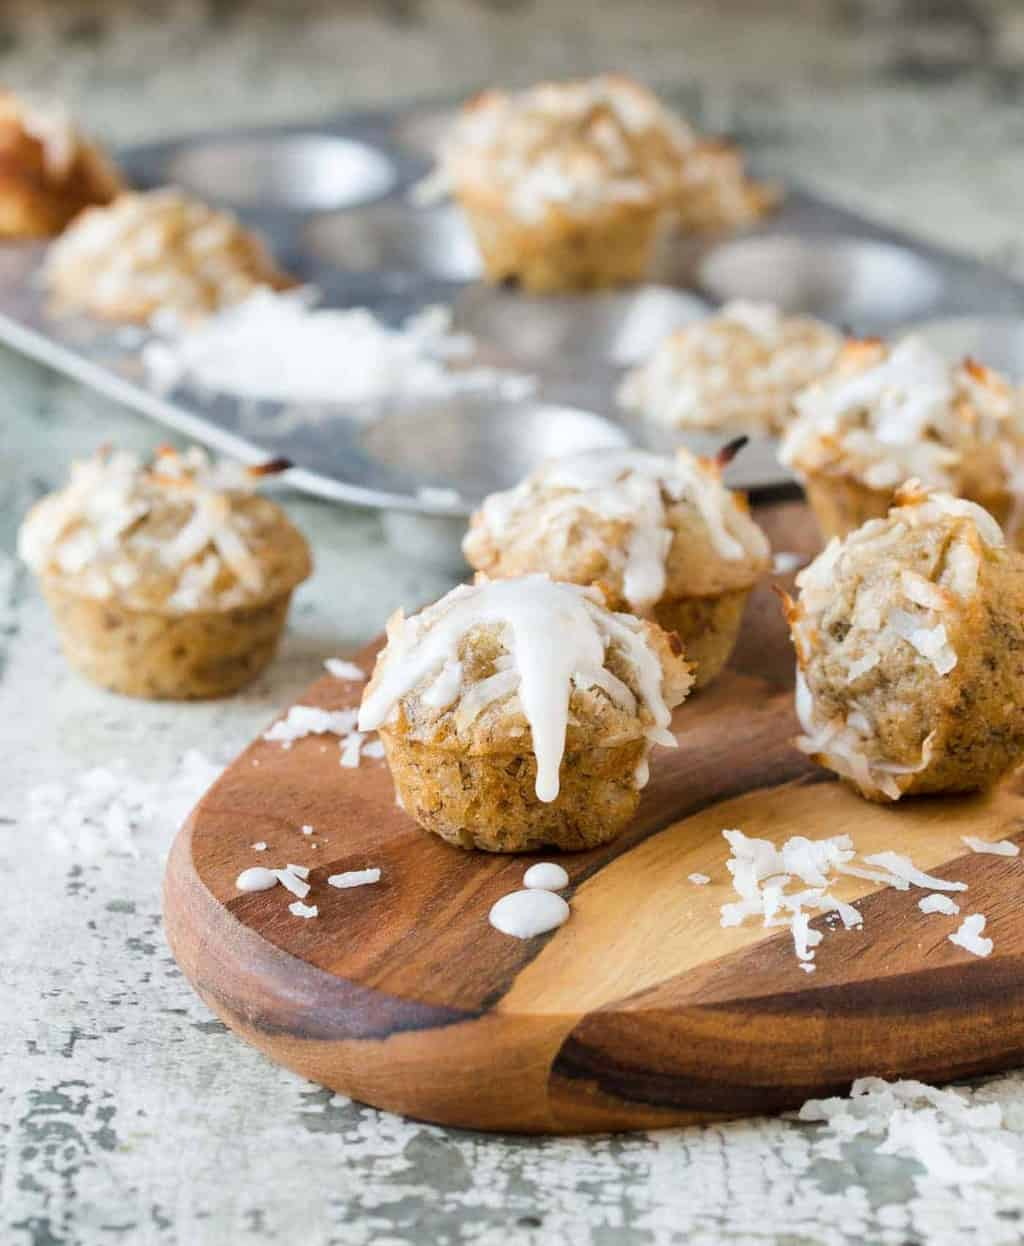 Coconut Banana Bread Mini Muffins with a tangy fresh lime glaze on a wooden serving platter.